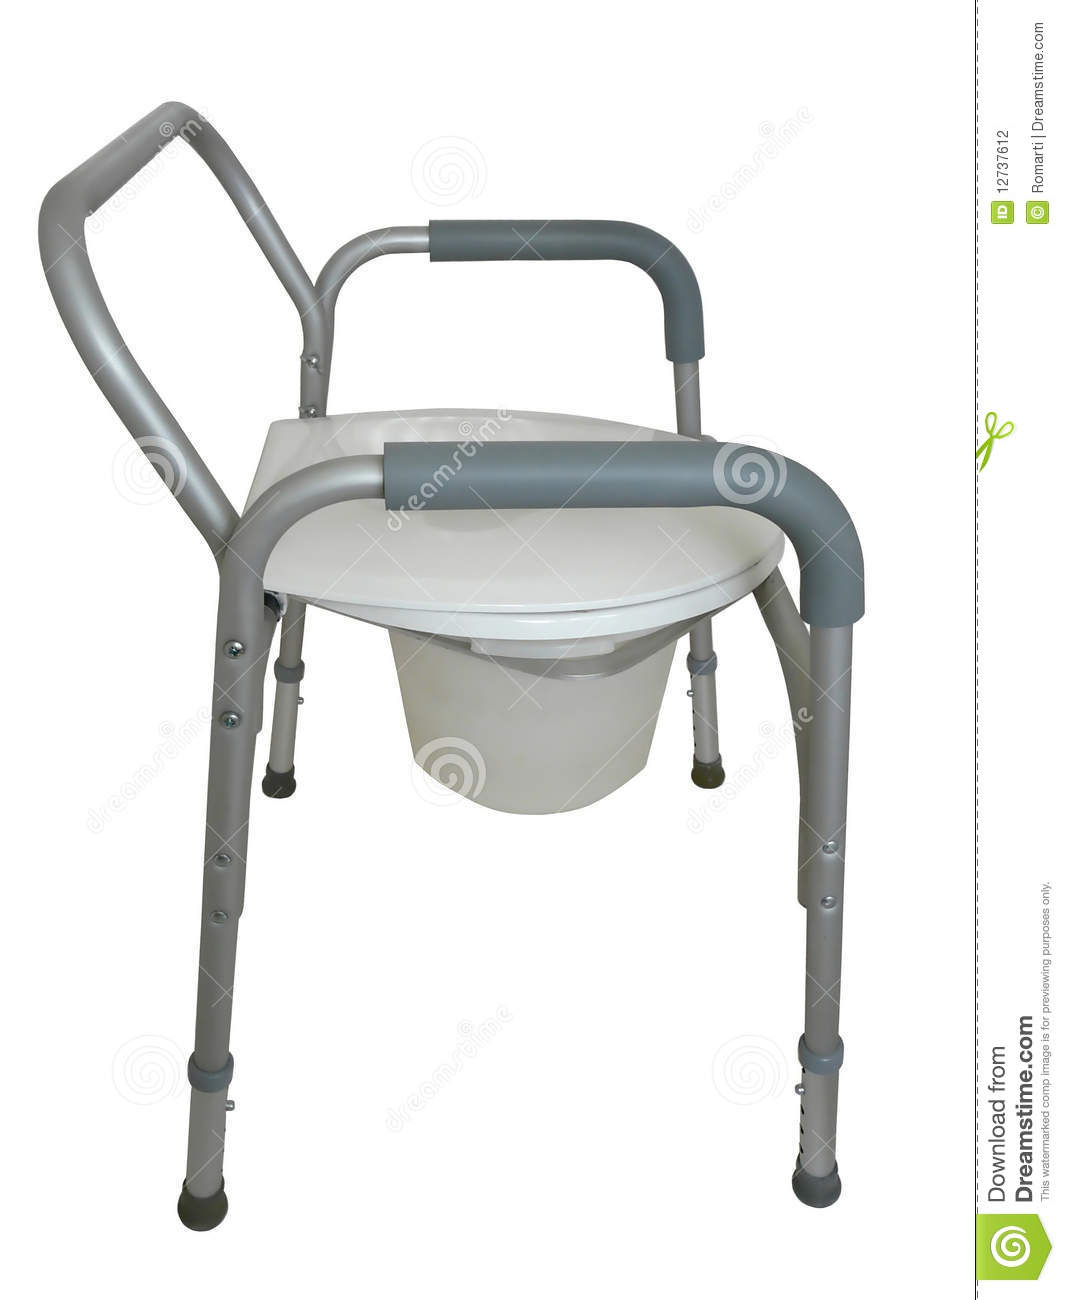 Bedside Commode, Shower Chair Stock Photo - Image of bedside ...